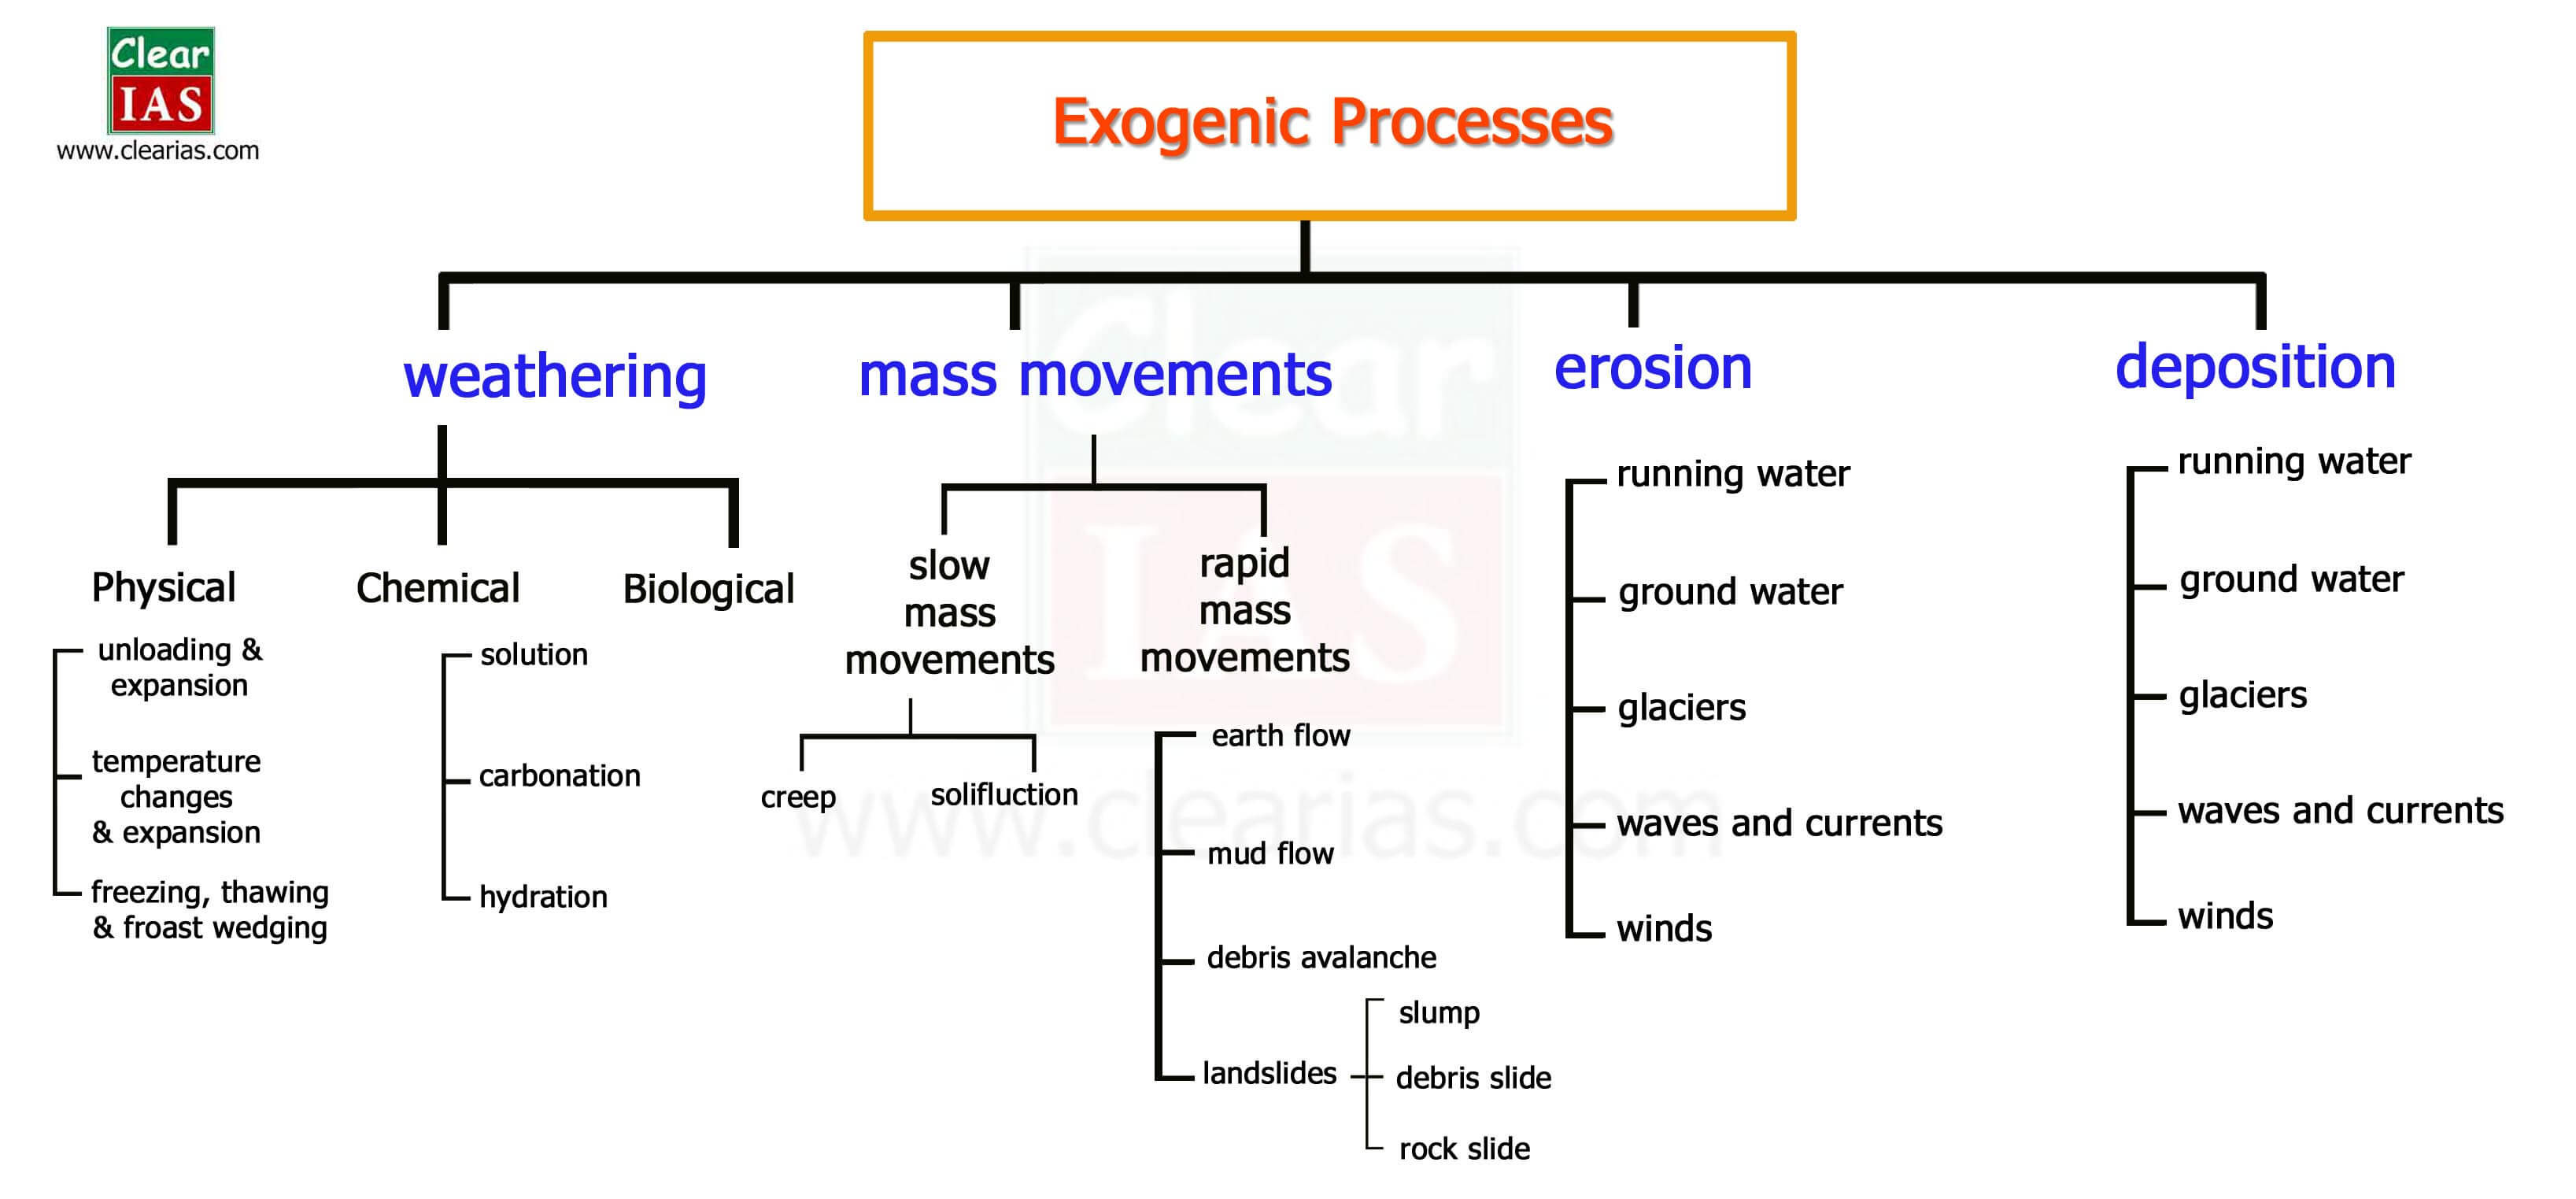 Exogenic Processes - Denudation